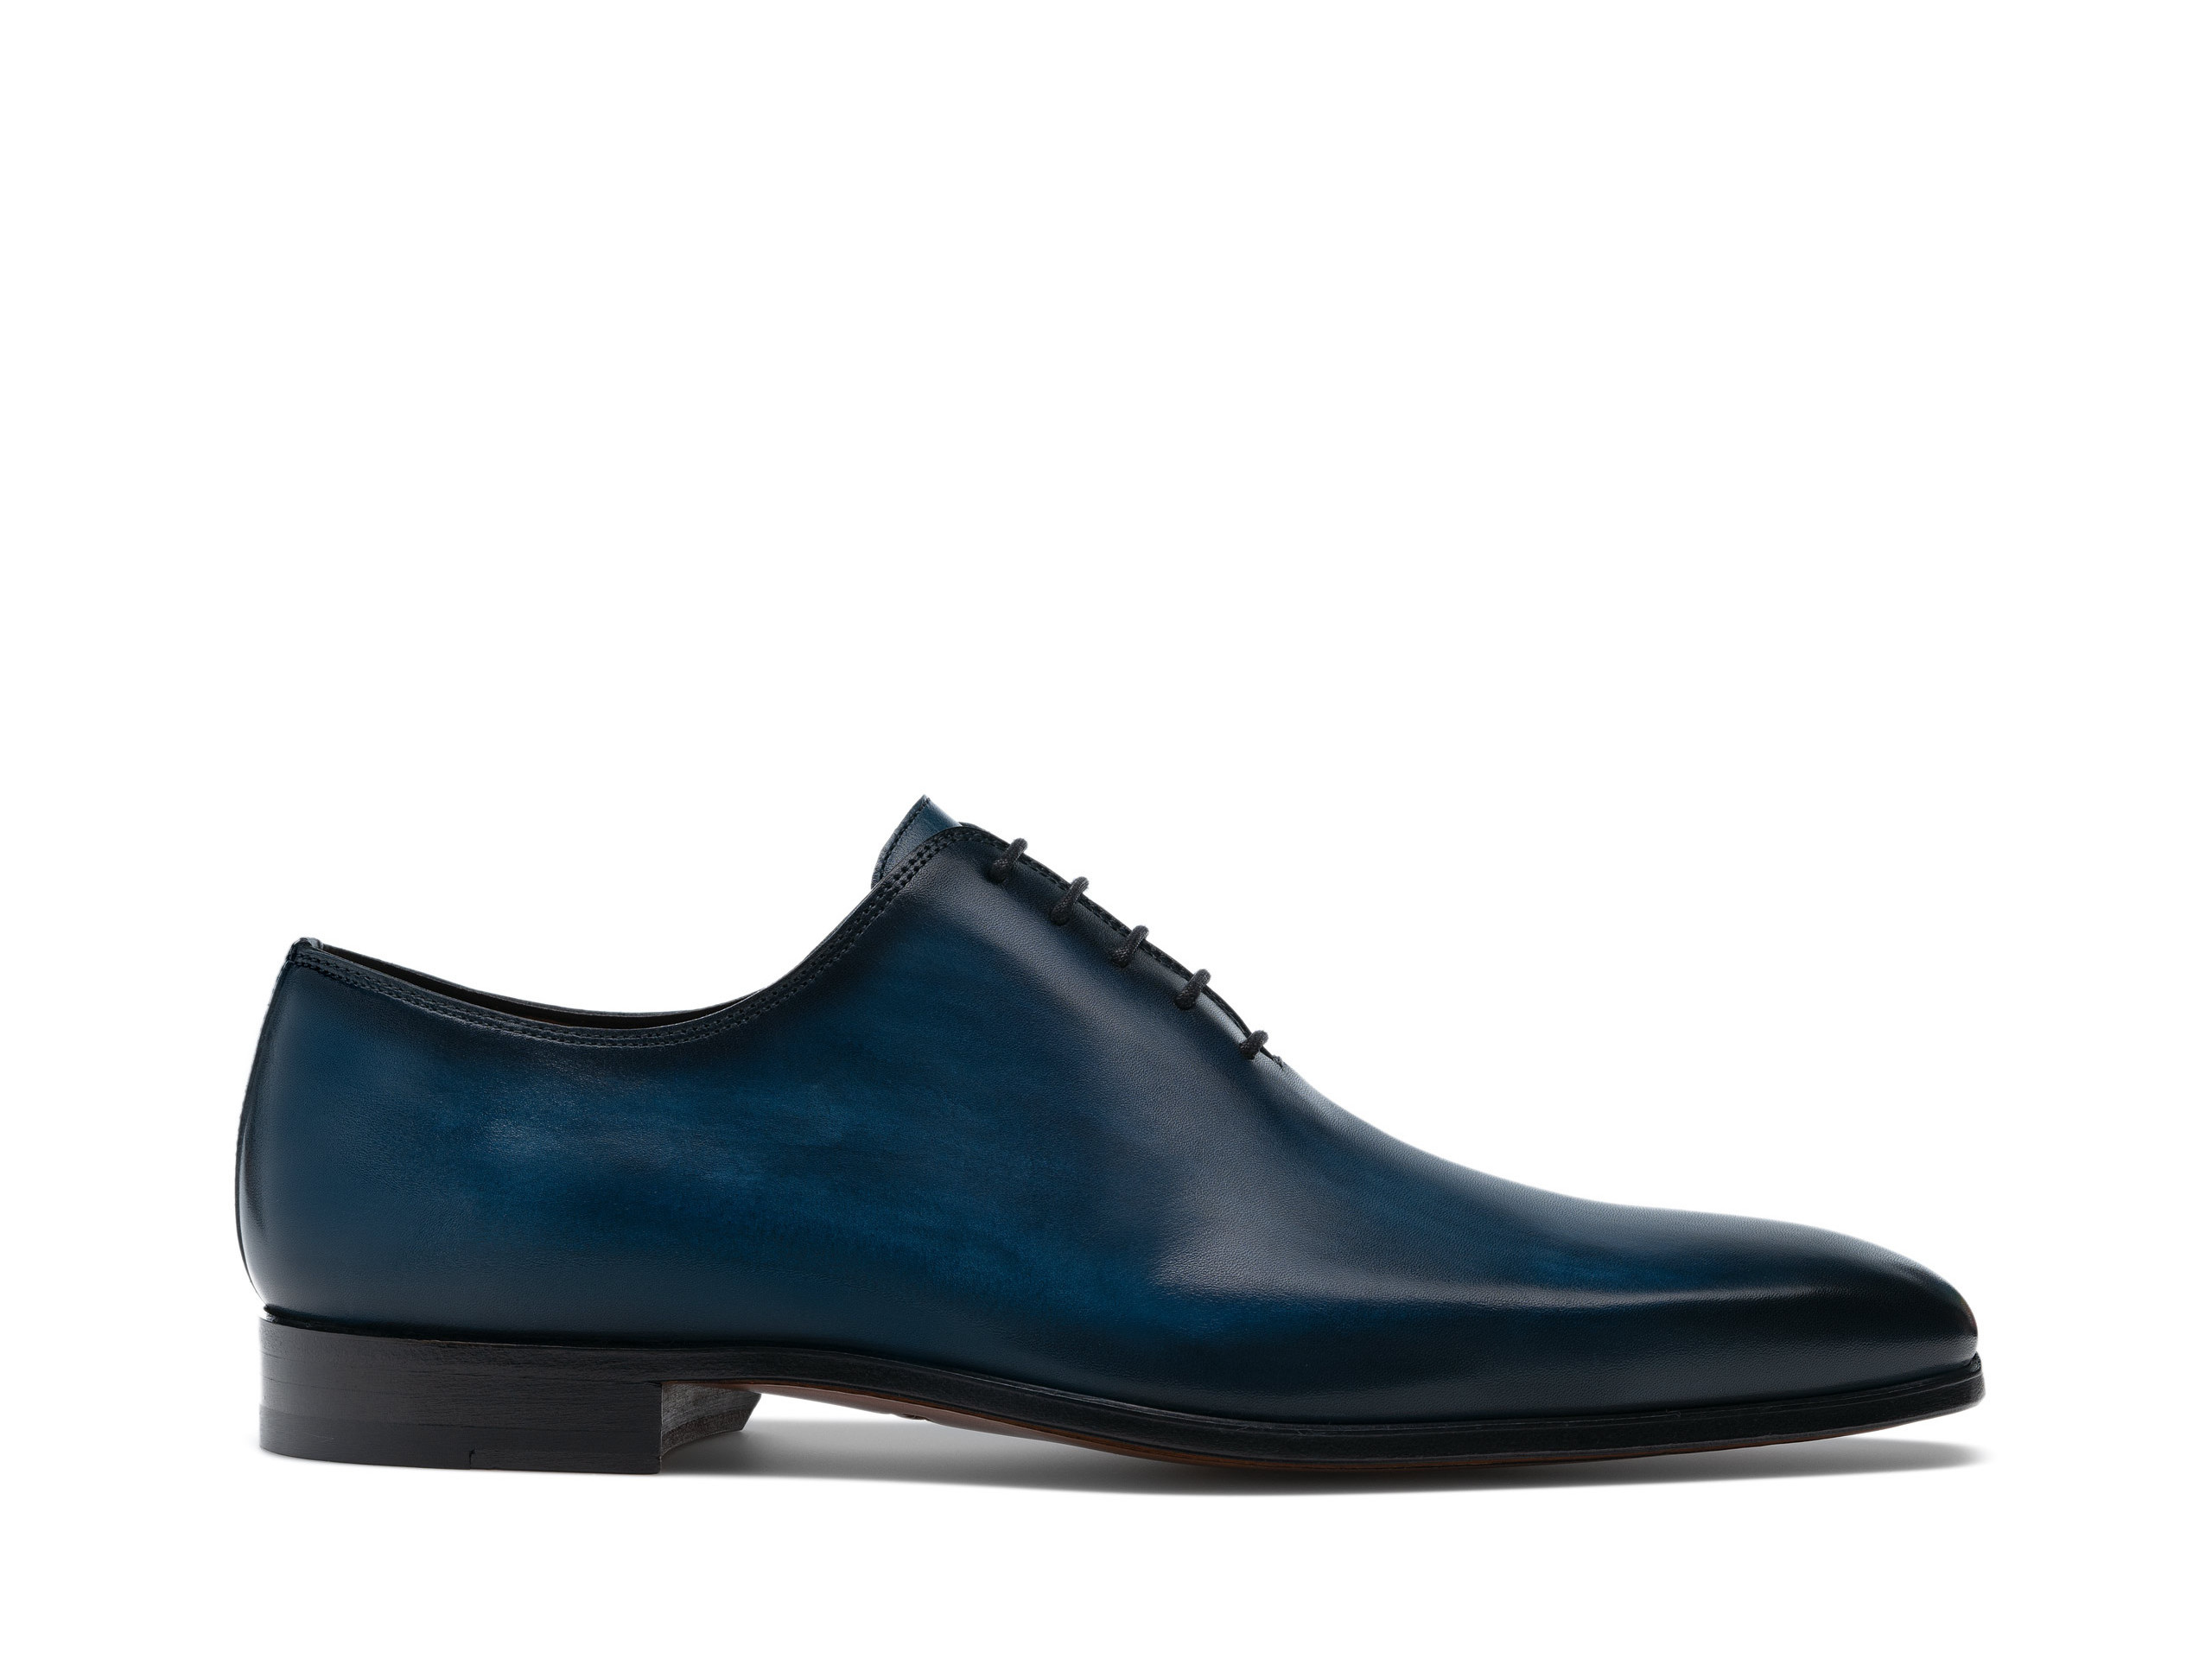 Side view of the Magnanni Cruz Royal Men's Oxford Shoes